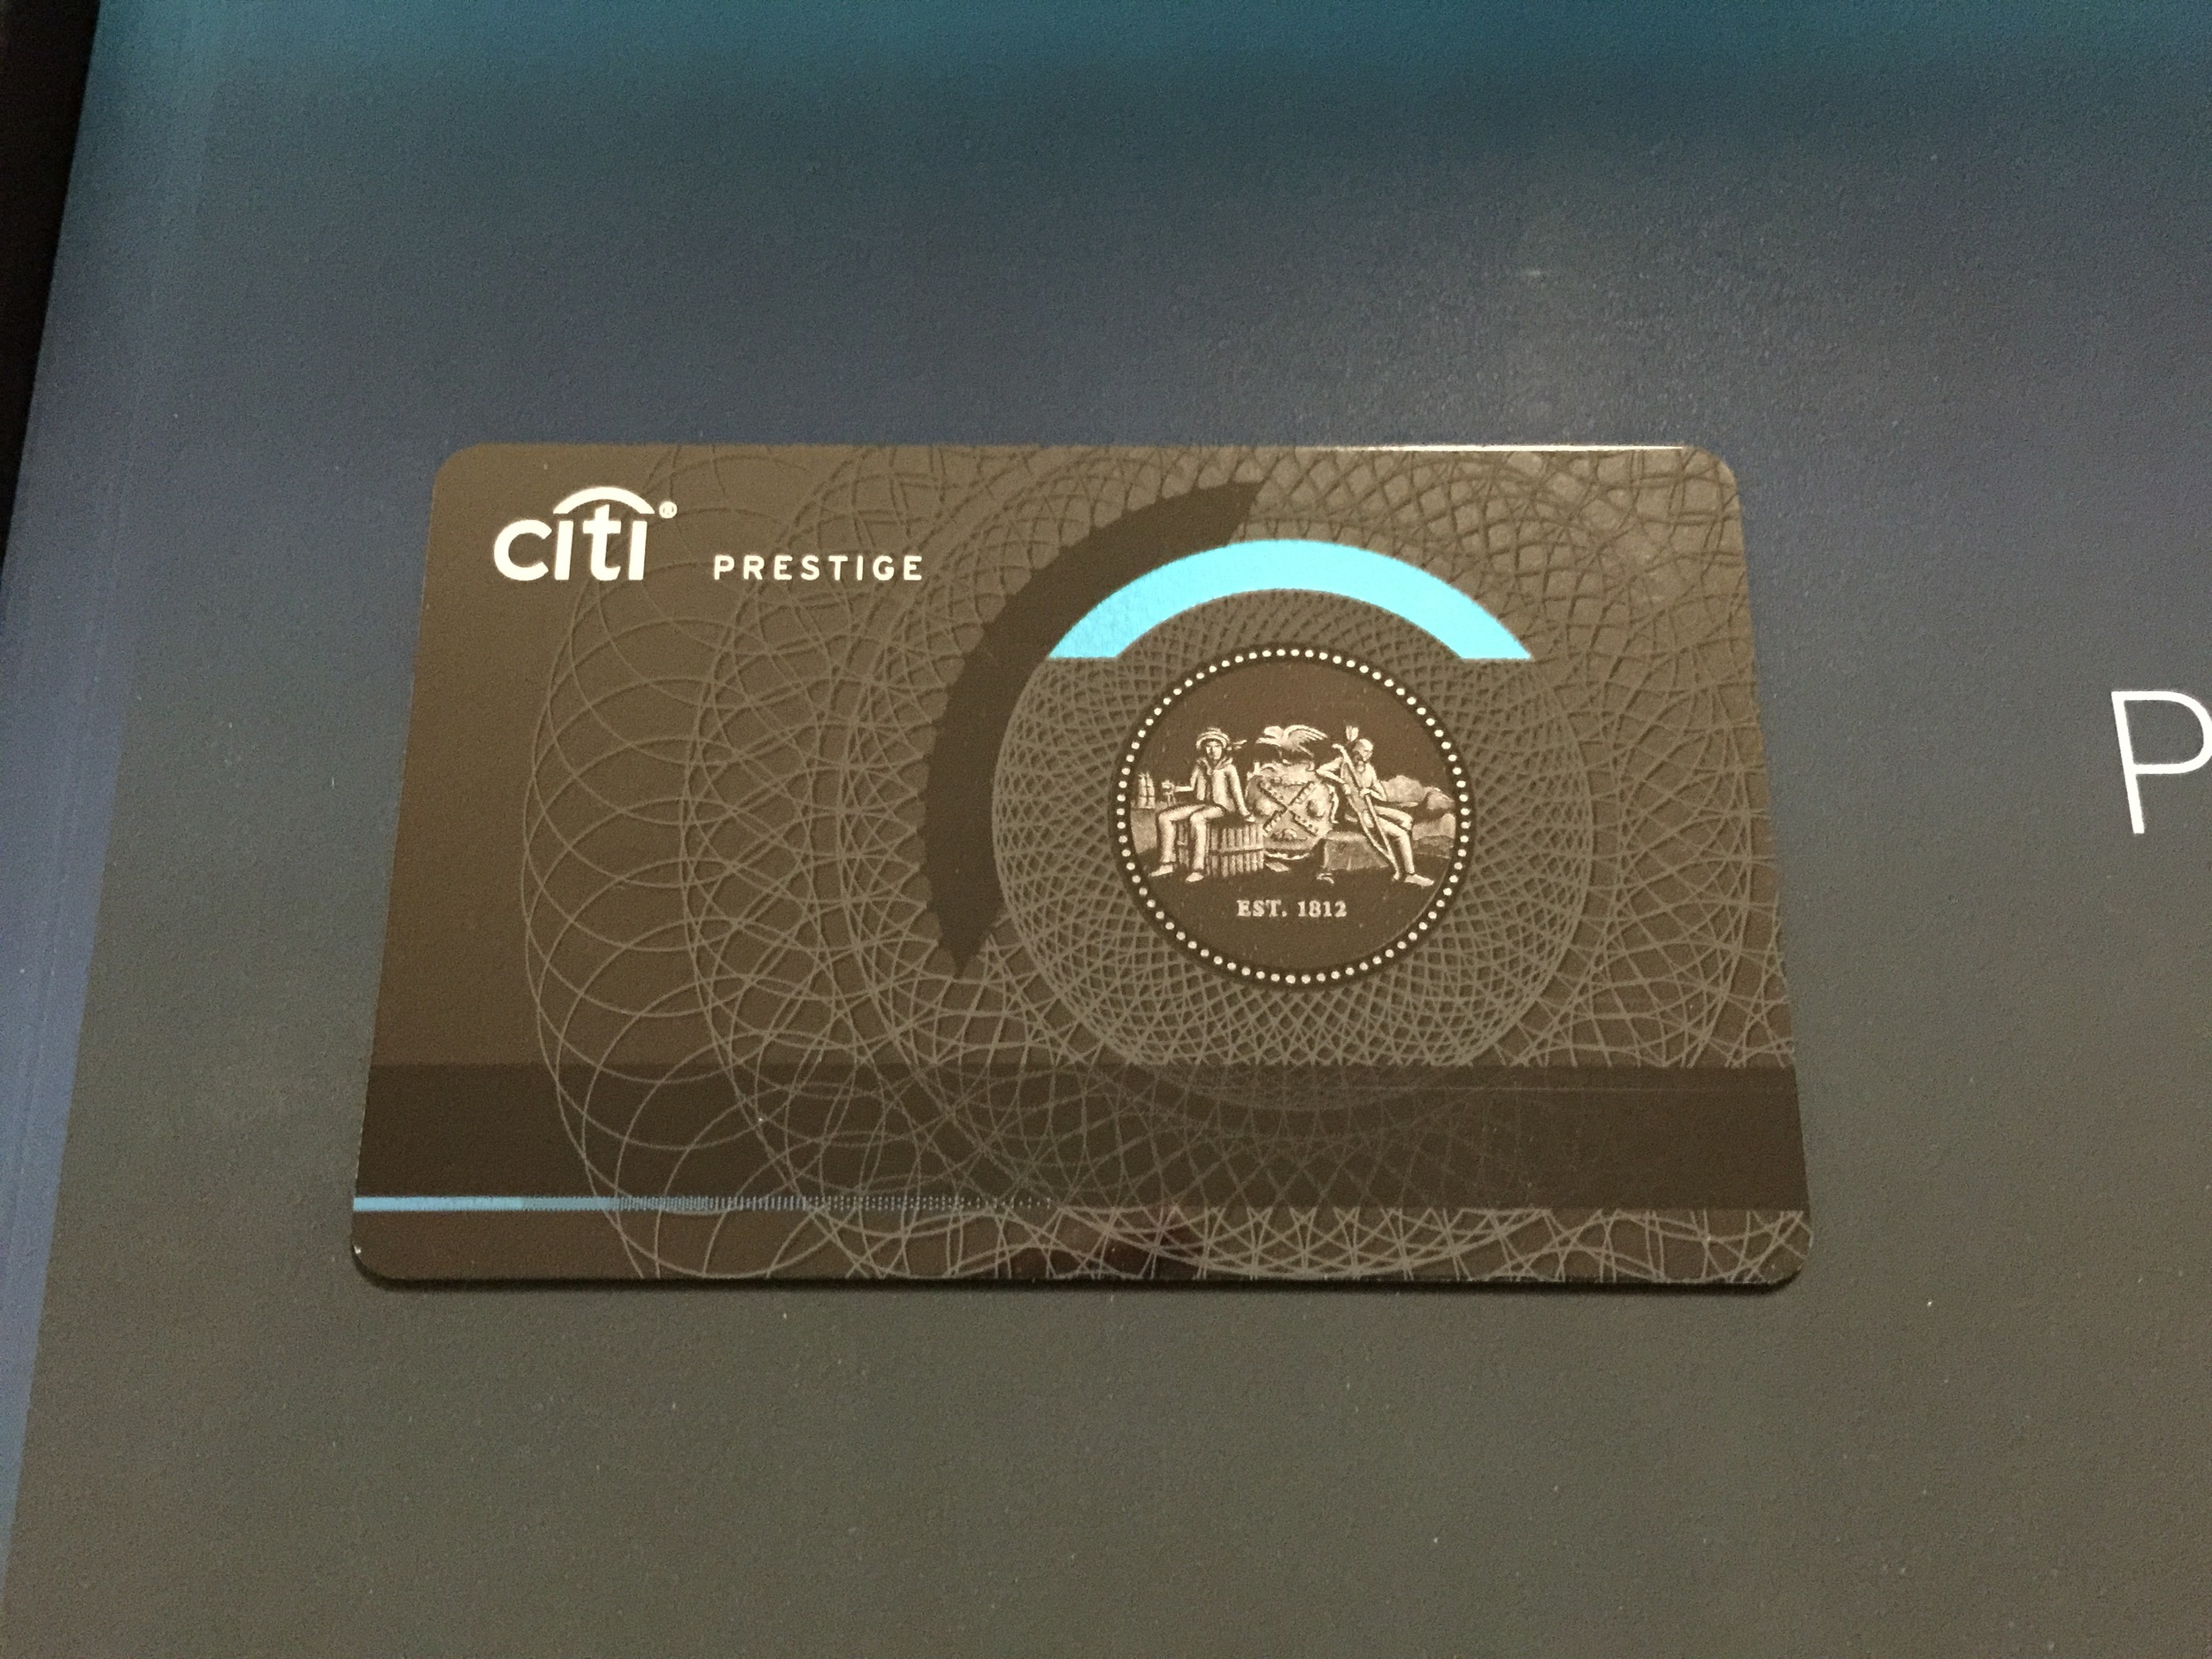 The Citi Prestige Card